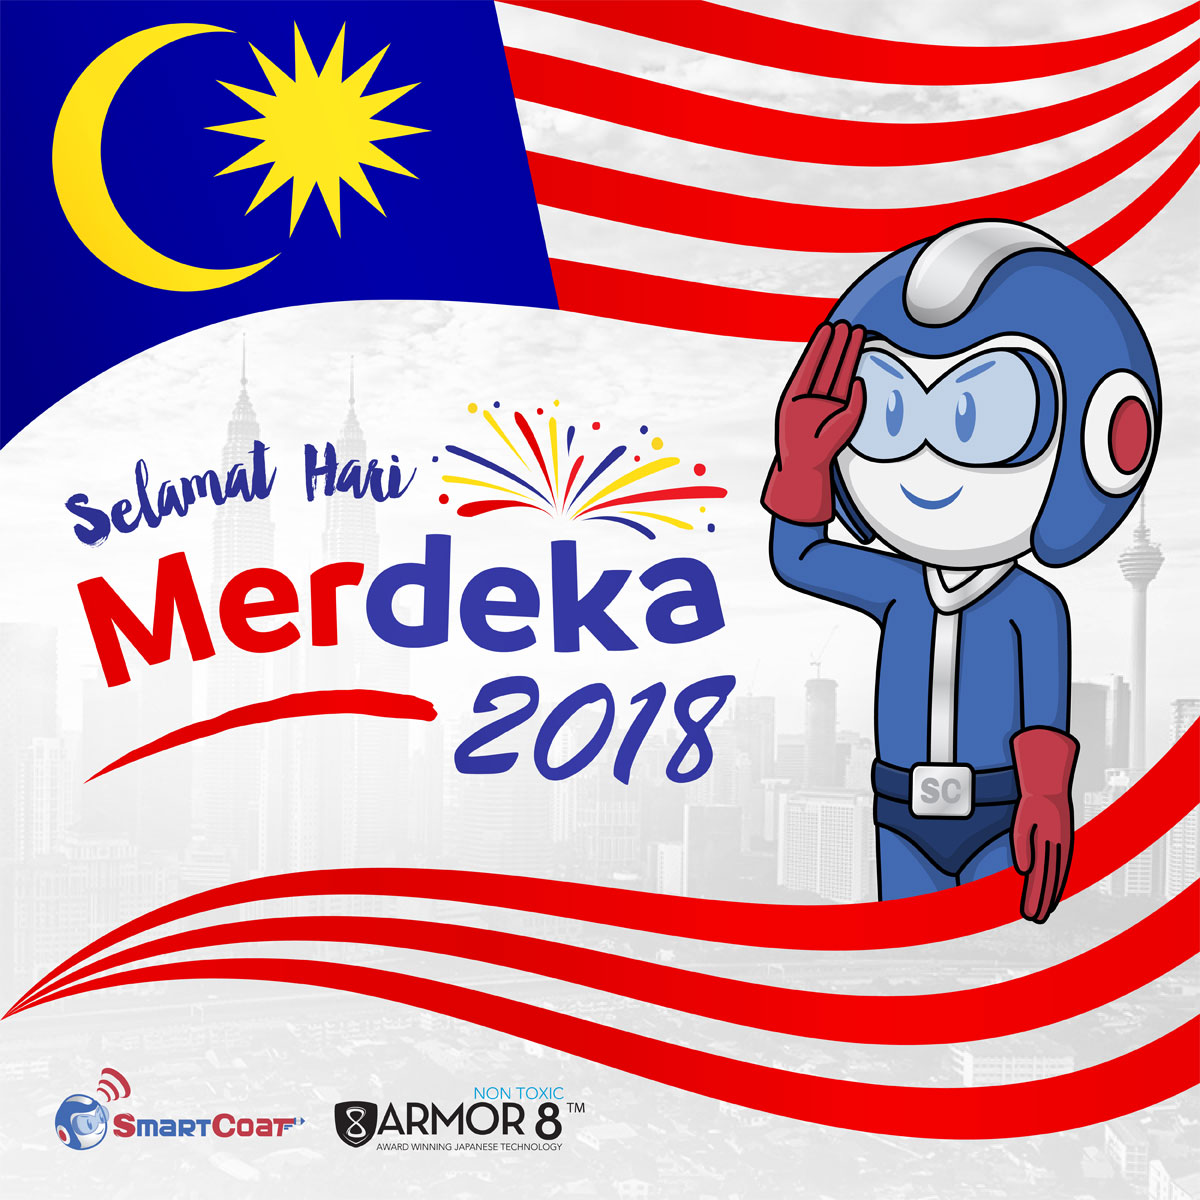 SmartCoat and Armor8 Selamat Hari Merdeka 2018 Facebook Post Design 04